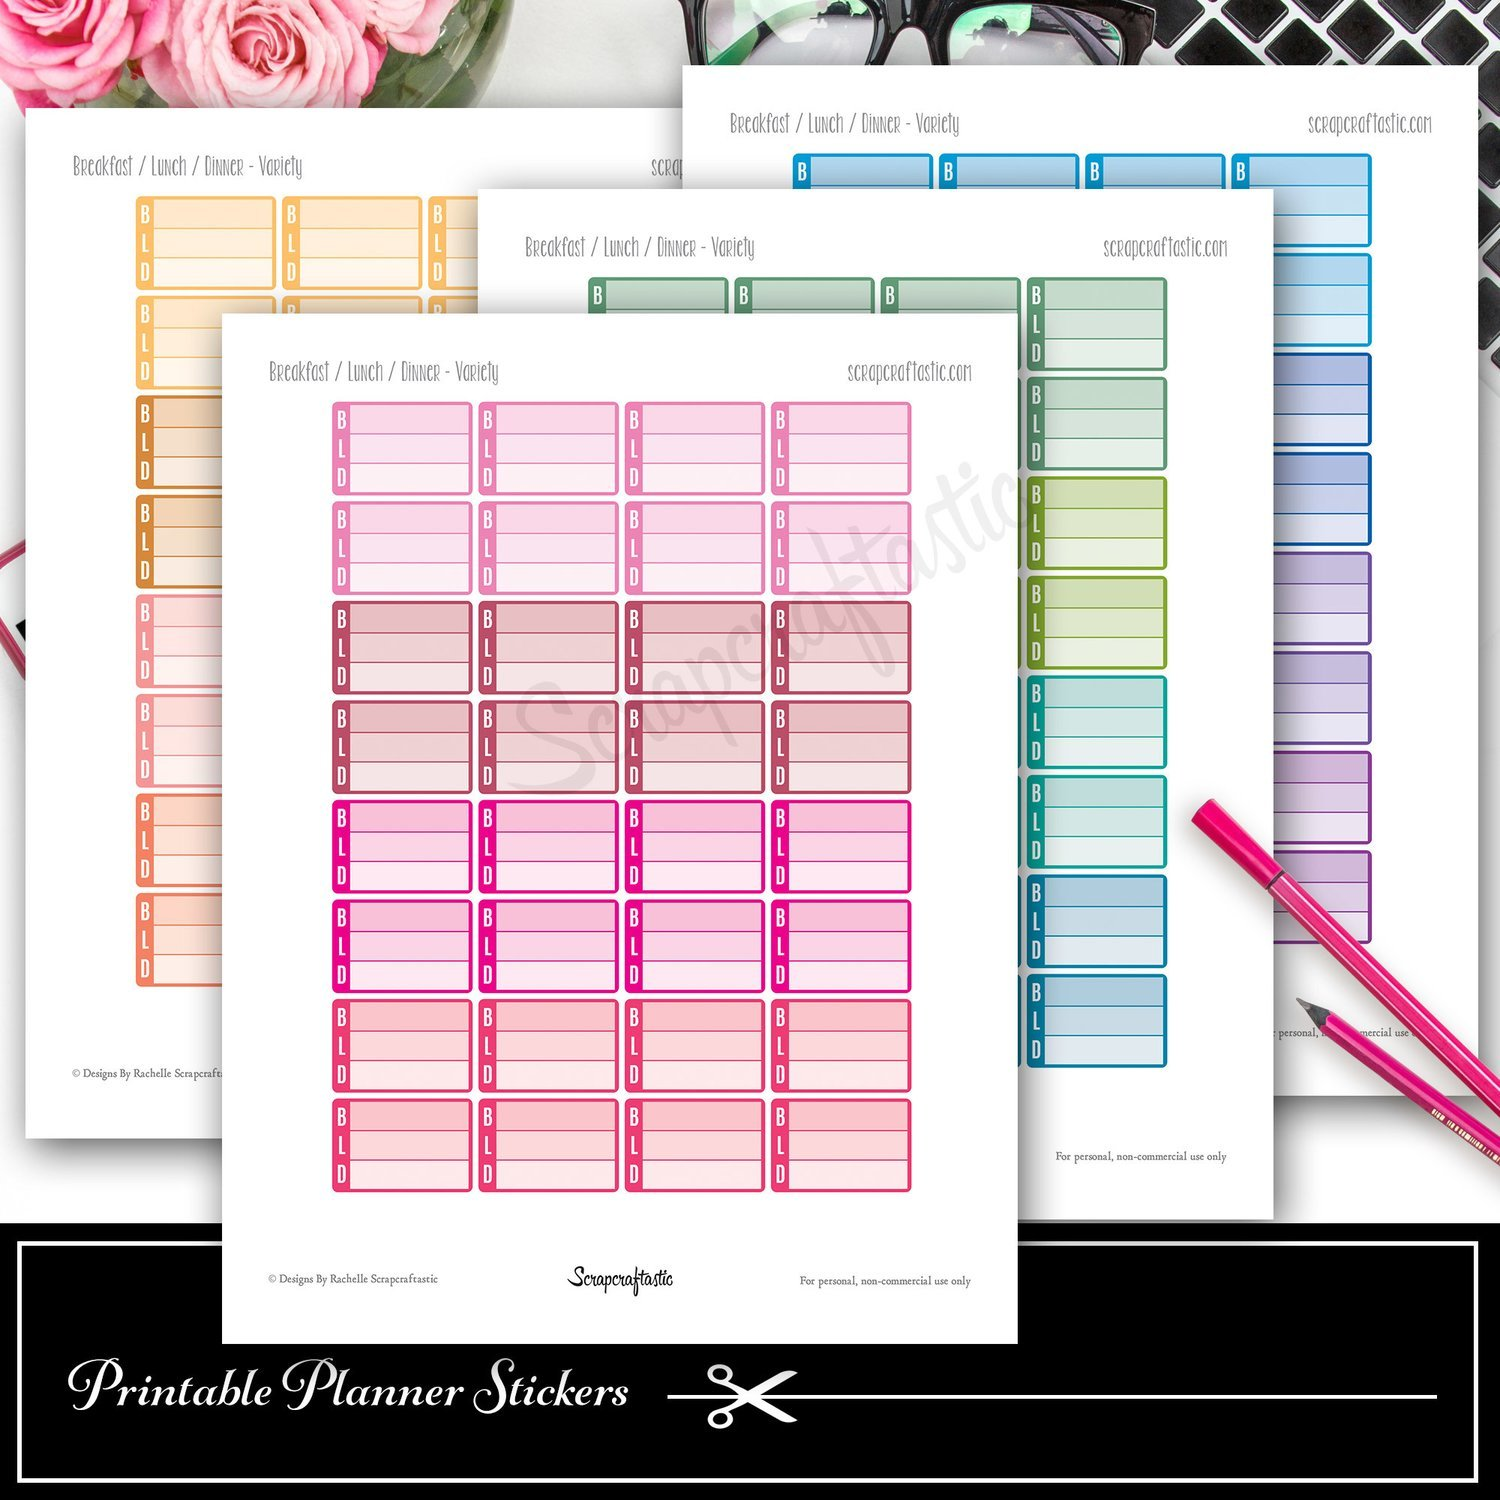 Breakfast, Lunch, Dinner (BLD) Printable Planner Stickers and Silhouette Cut File